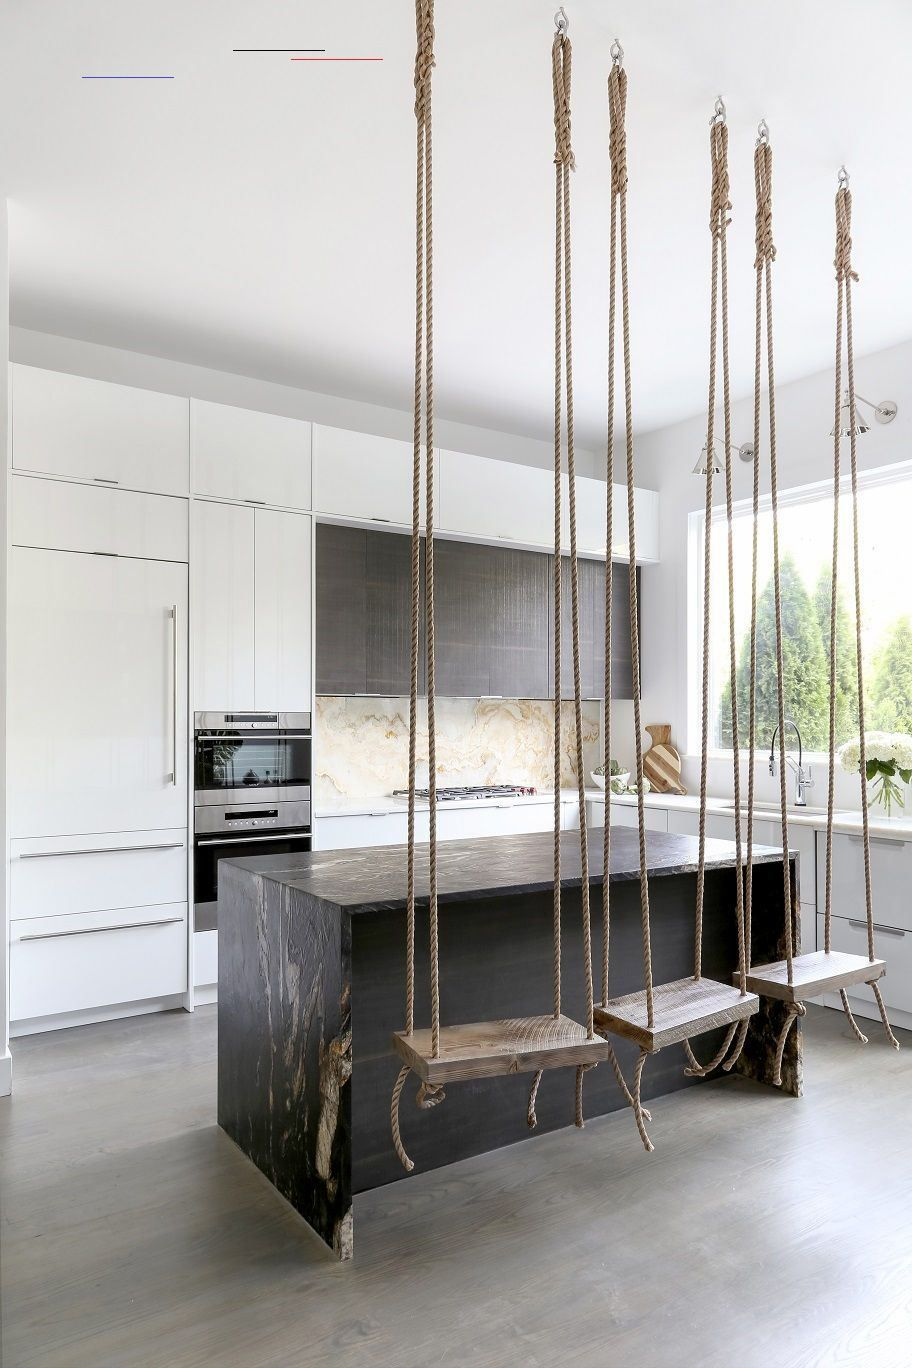 N.J. home makeover: Swings in the kitchen? This $250K ...